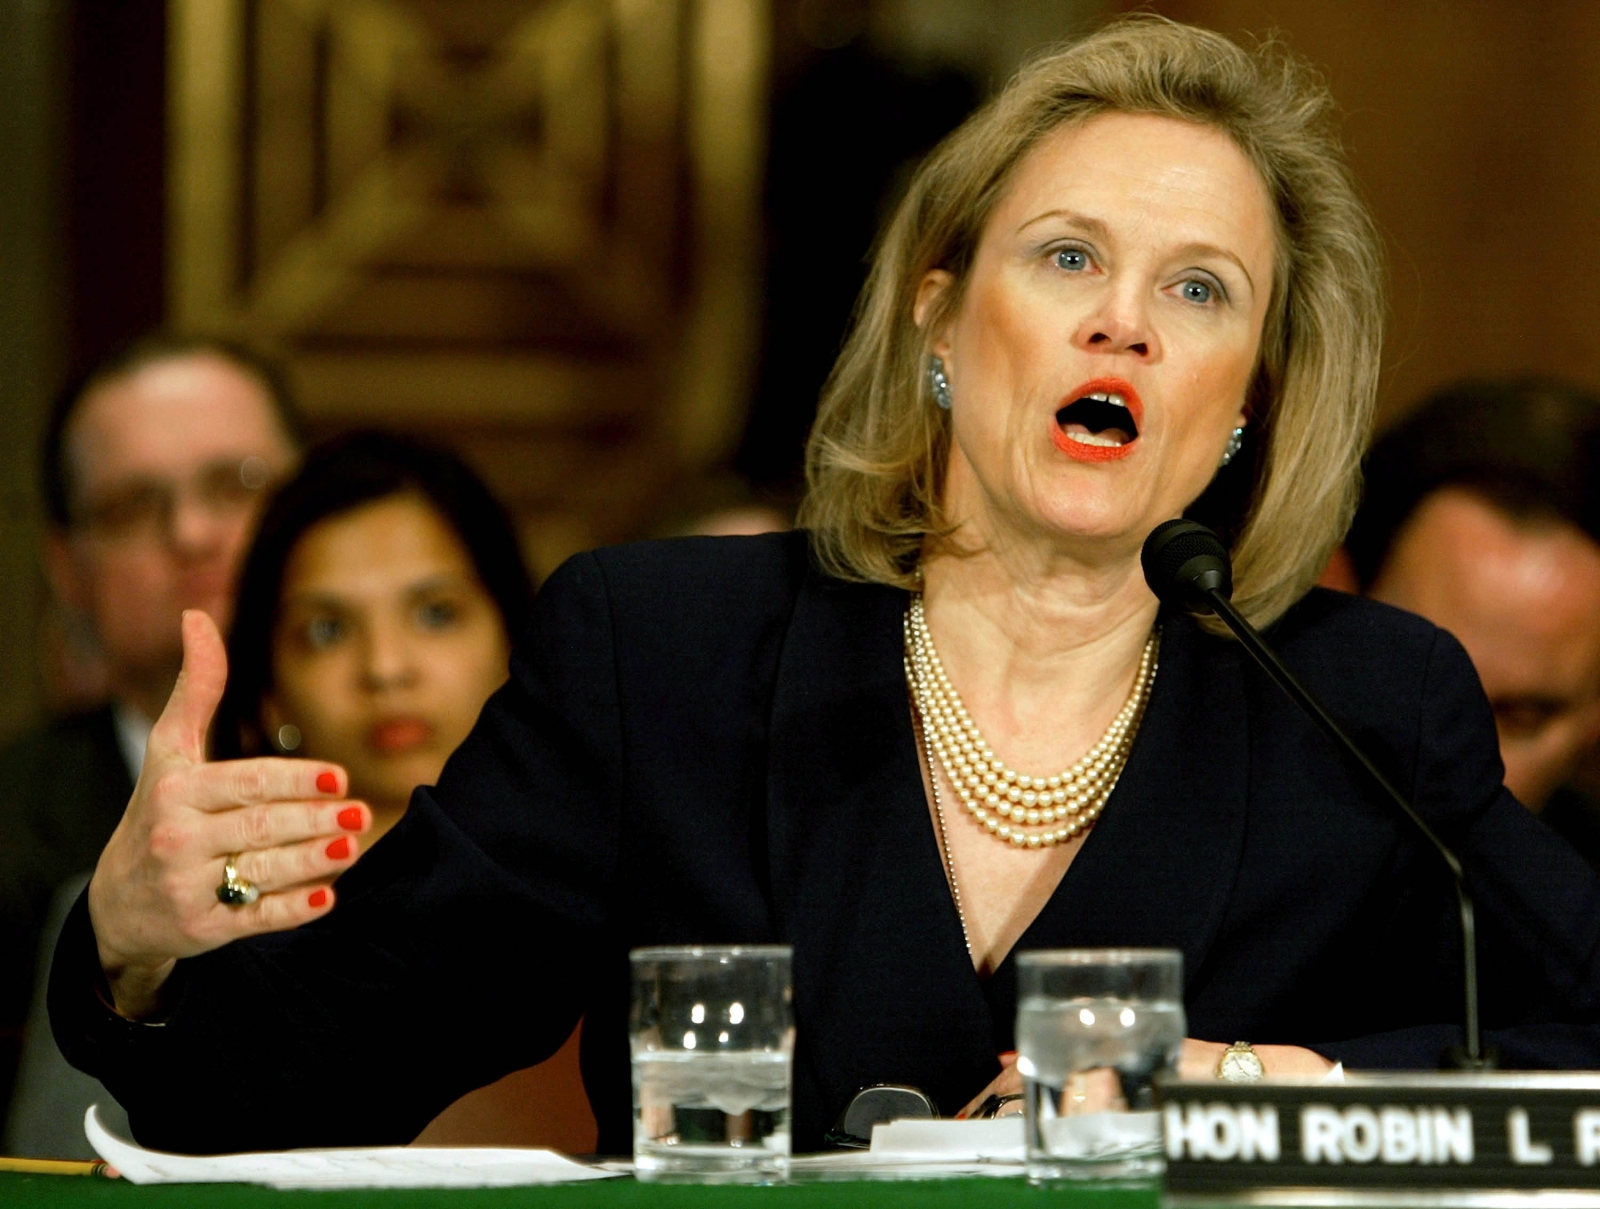 Robin L Raphel, pictured in 2004 at a Senate Foreign Relations Committee meeting. (Getty)